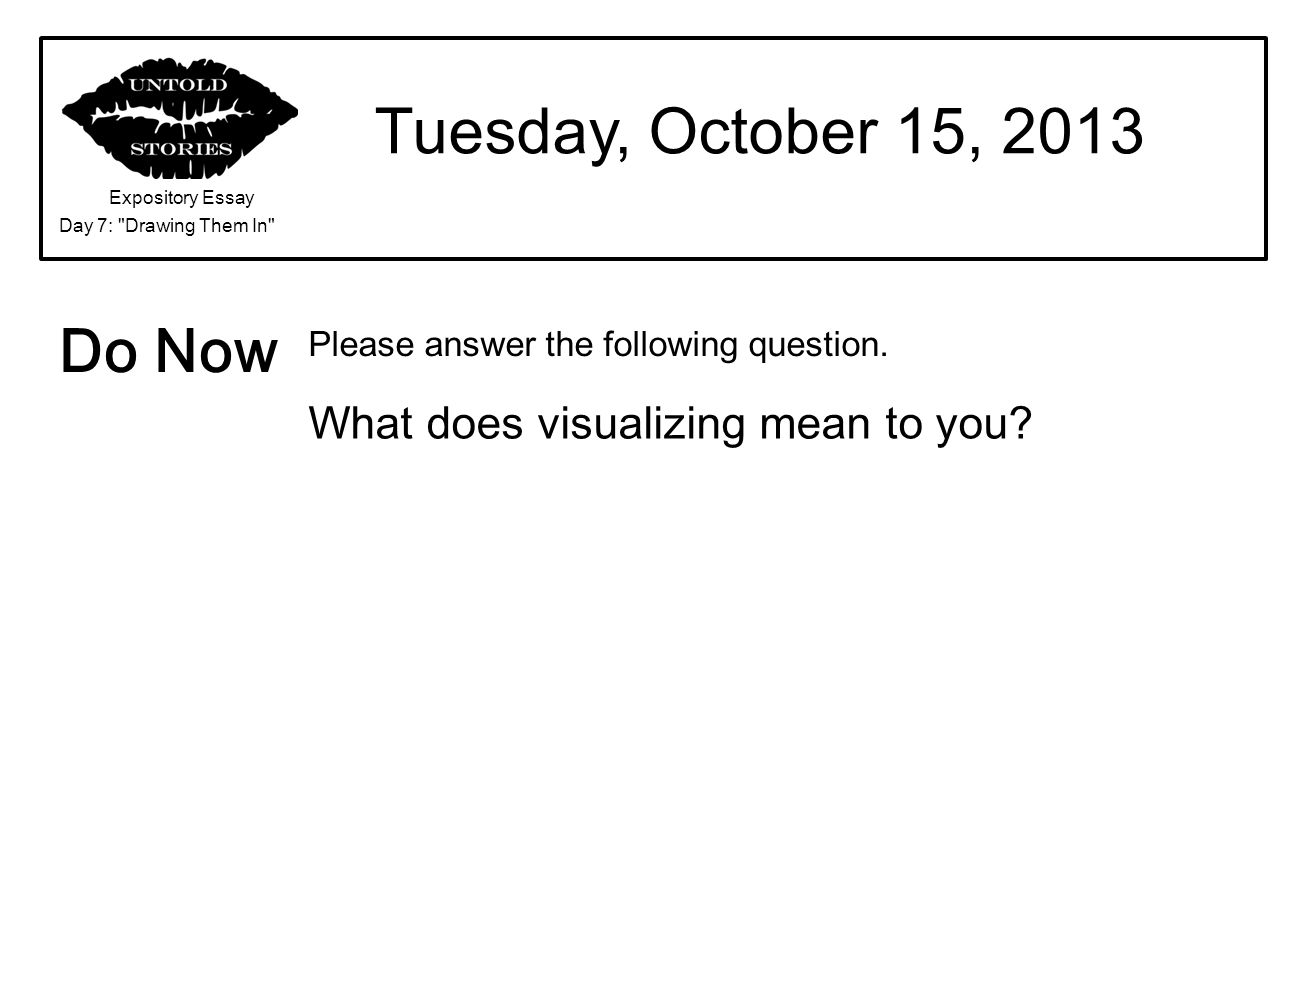 Tuesday, October 15, 2013 Do Now What does visualizing mean to you